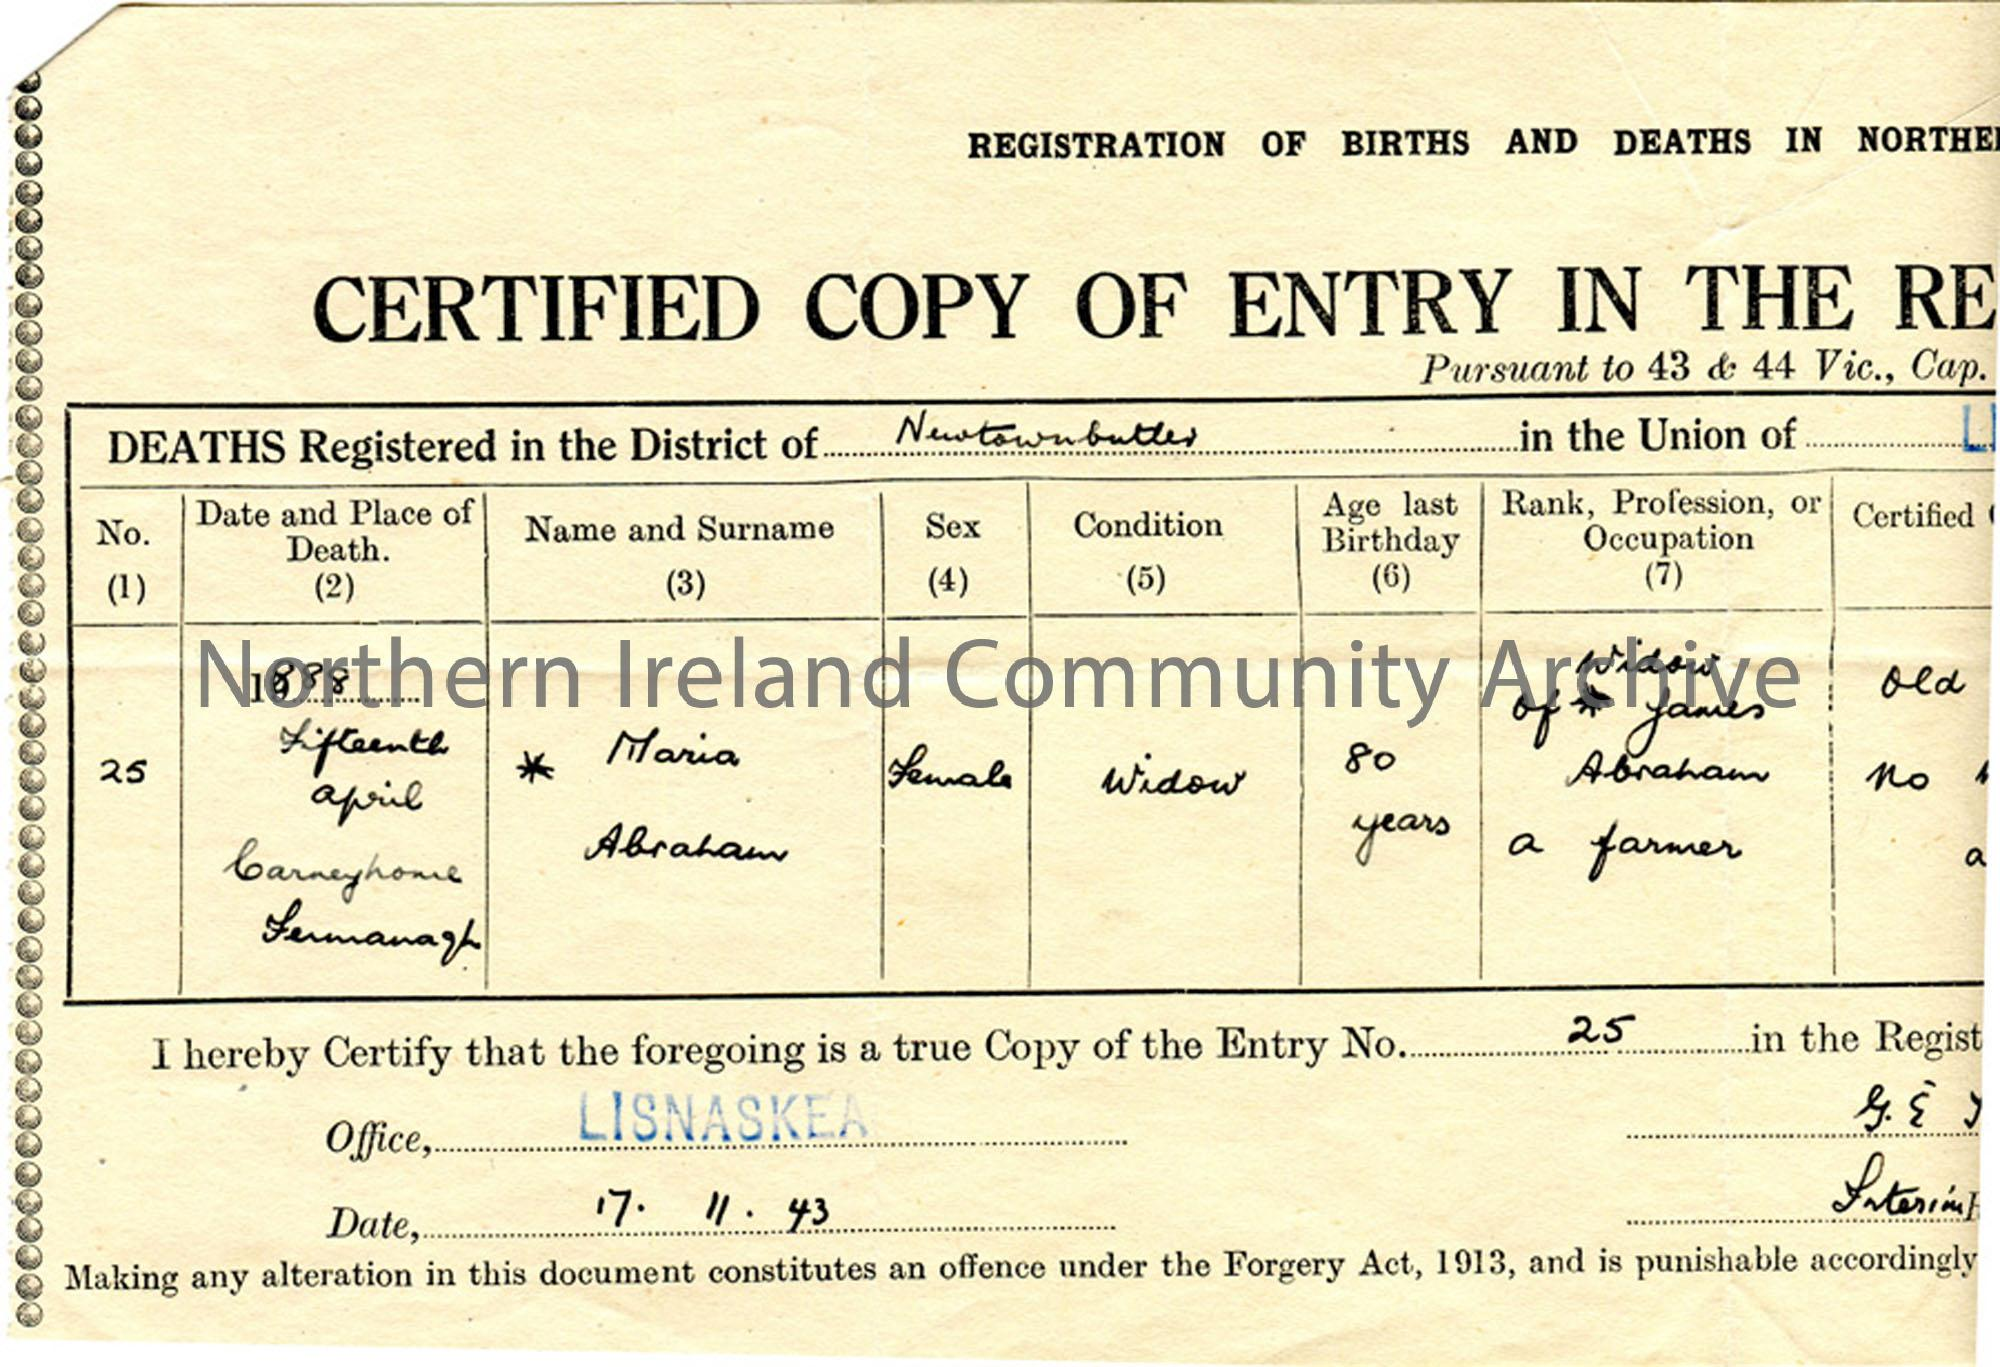 Death Certificate of Maria Abraham, Fermanagh